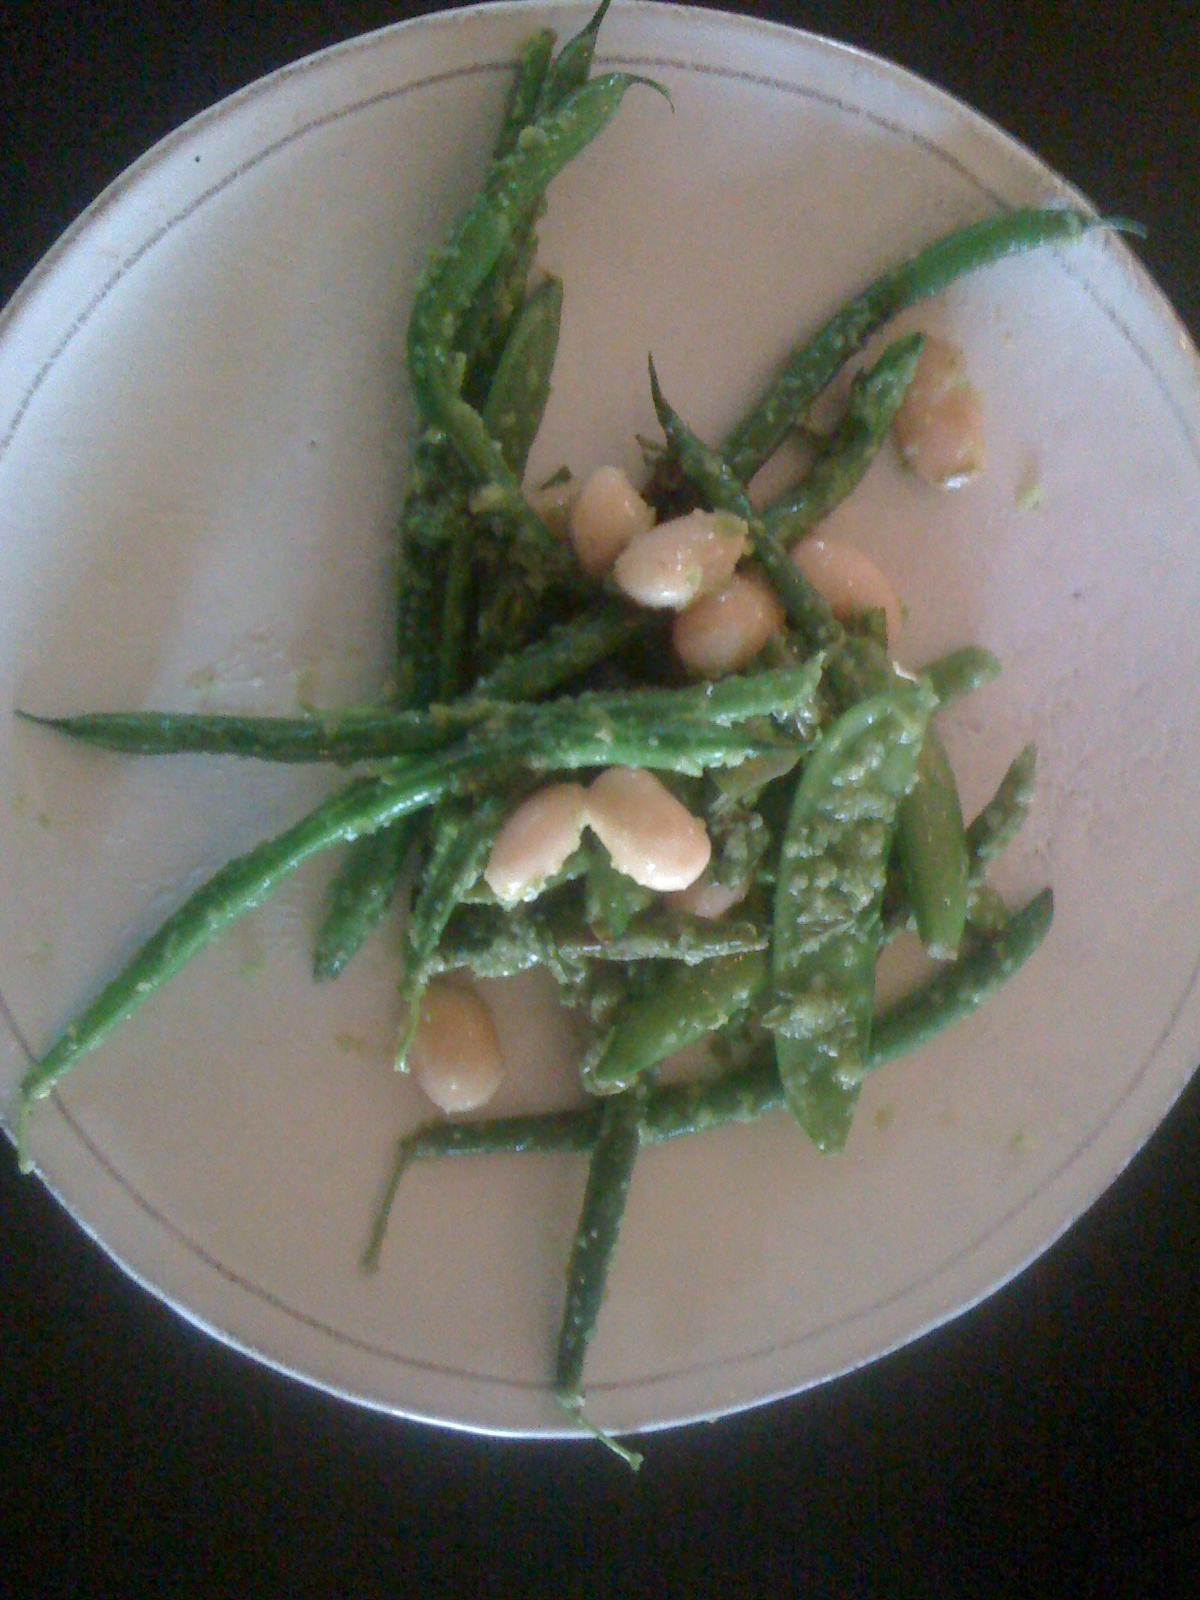 MELANGE OF ASPARAGUS, PEAS, AND GREEN BEANS